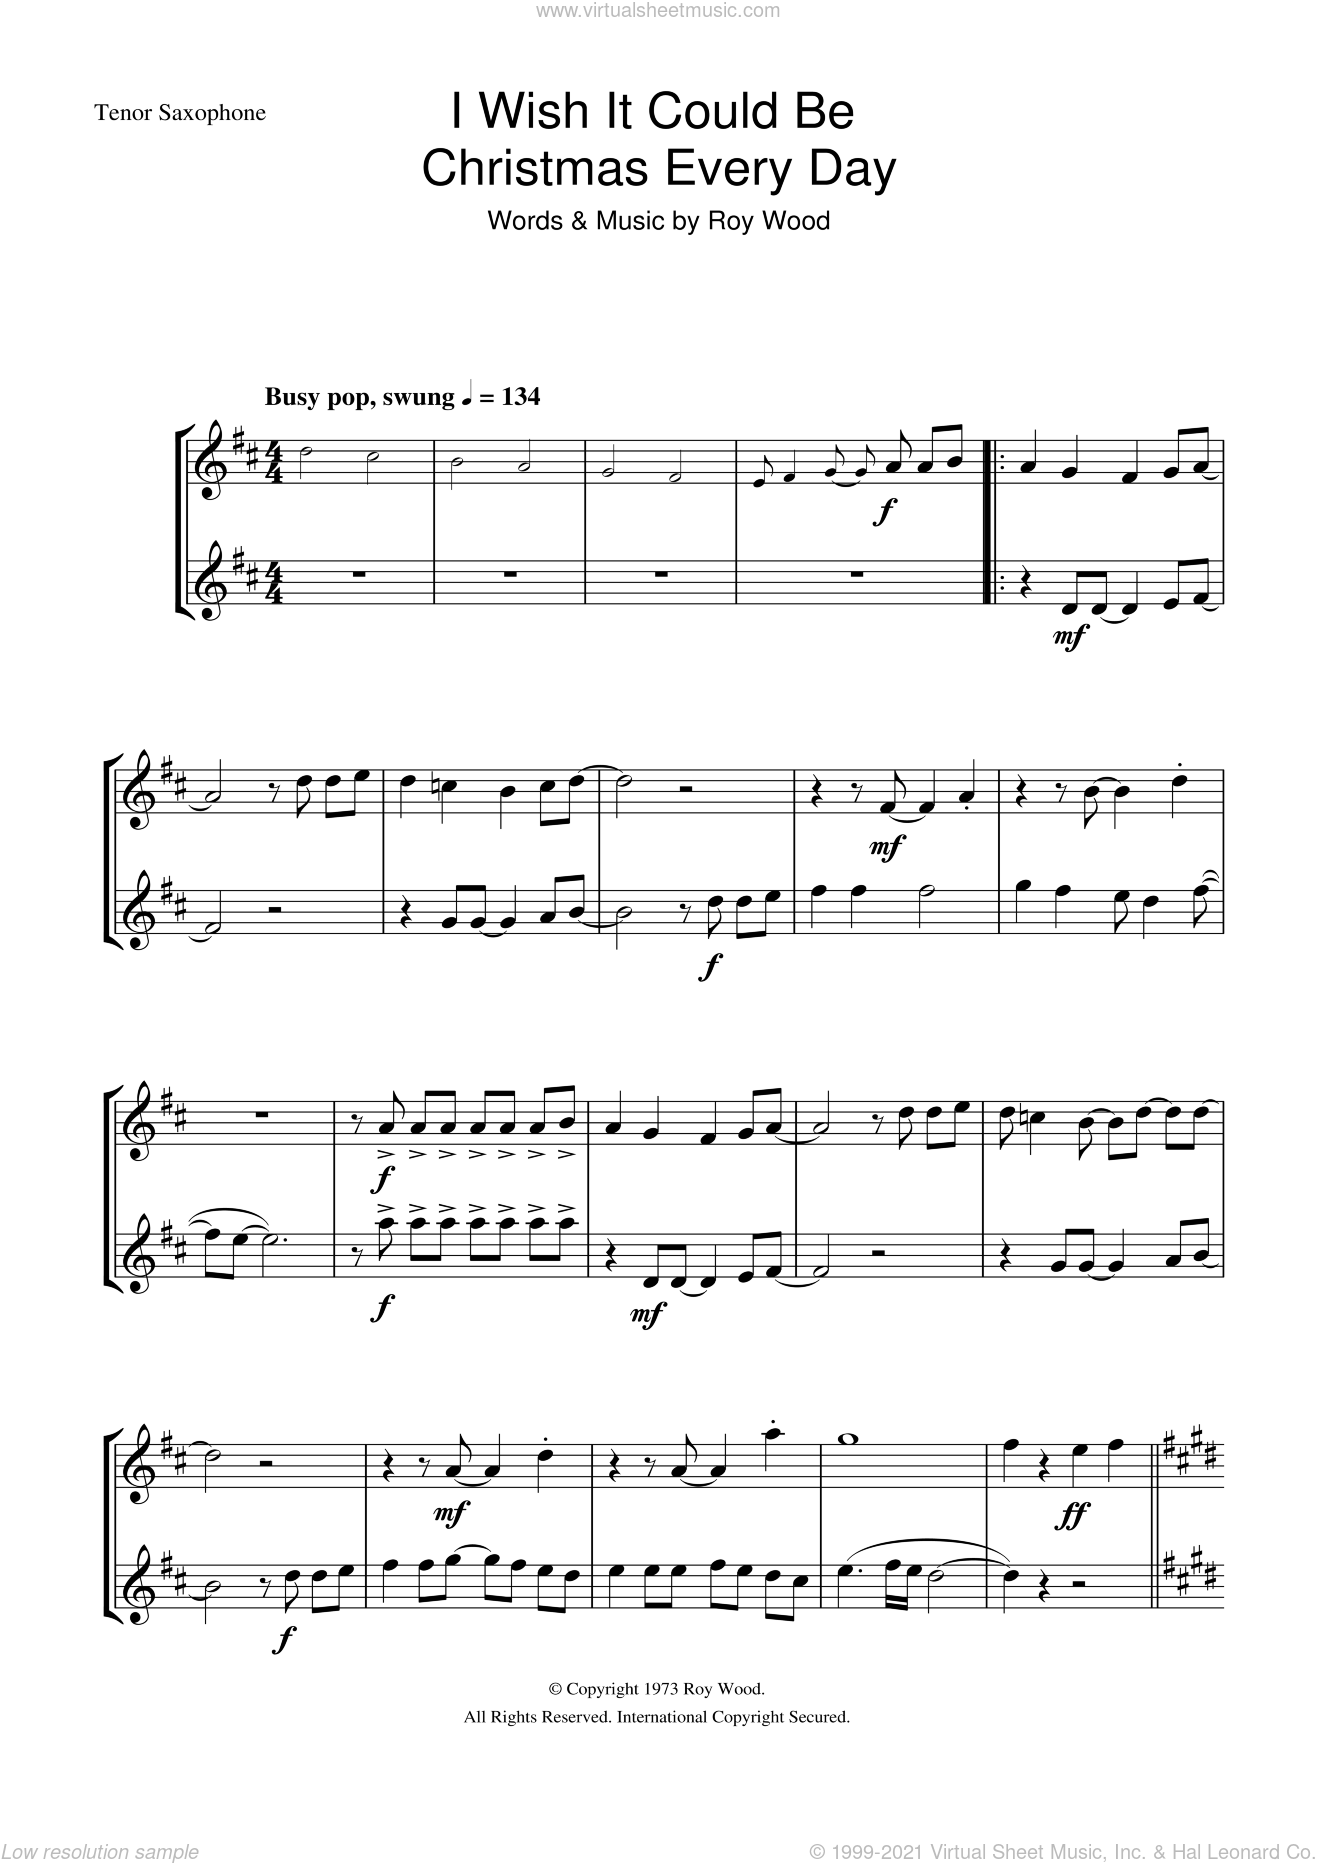 I Wish It Could Be Christmas Every Day sheet music for tenor saxophone solo by Wizzard and Roy Wood, intermediate skill level